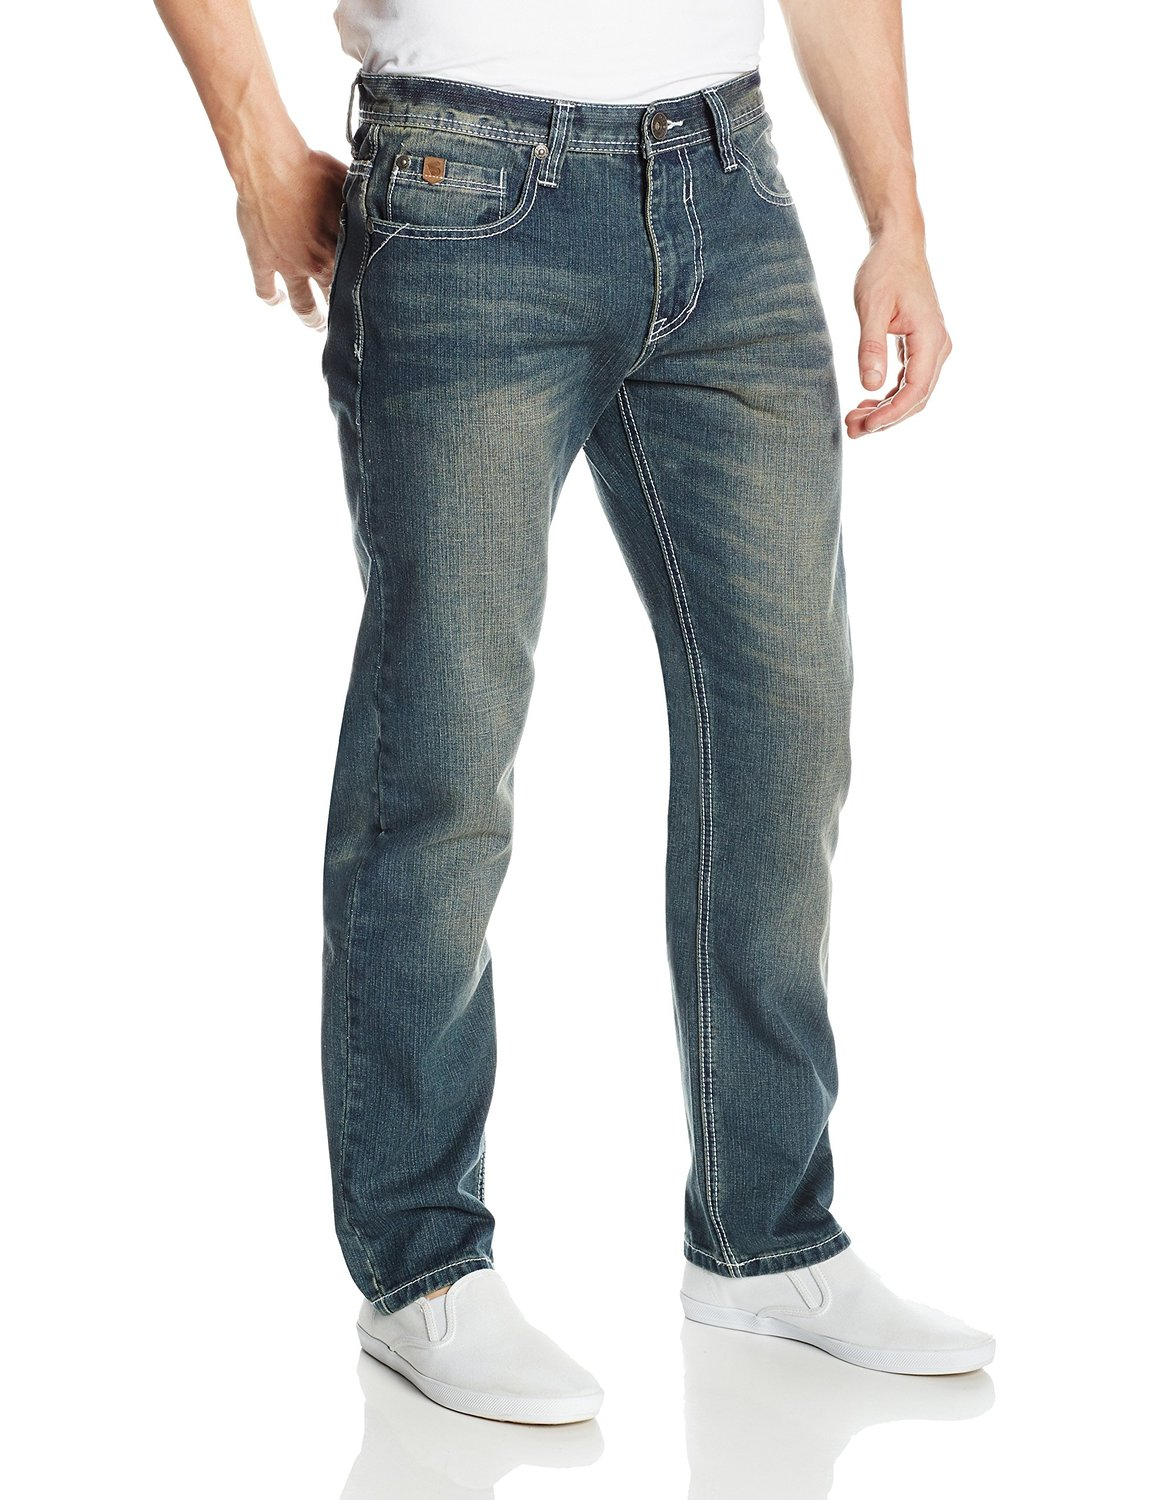 Southpole Straight Washed Premium Denim